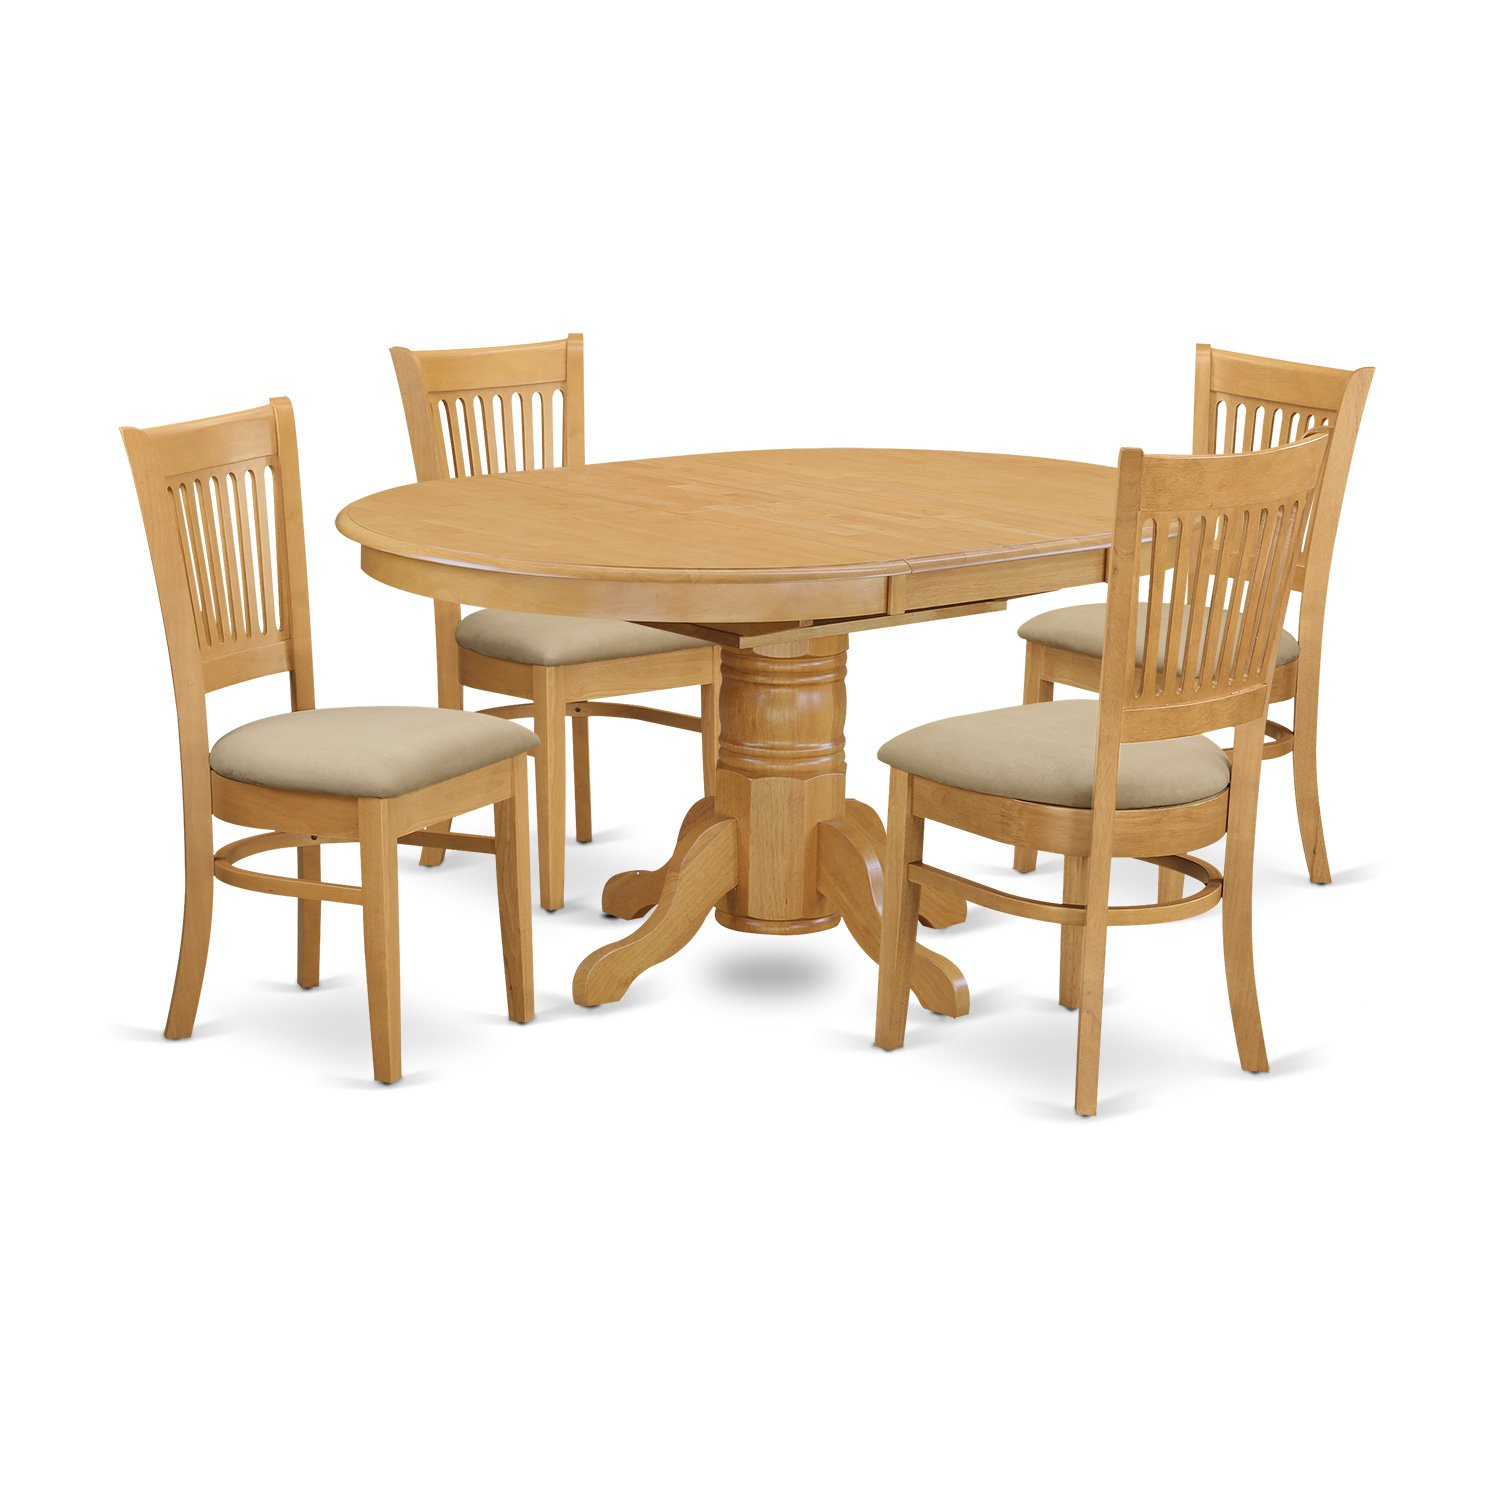 rubberwood butterfly table with 4 chairs gold chair covers for sale 5 pc dinette dining set oval microfiber